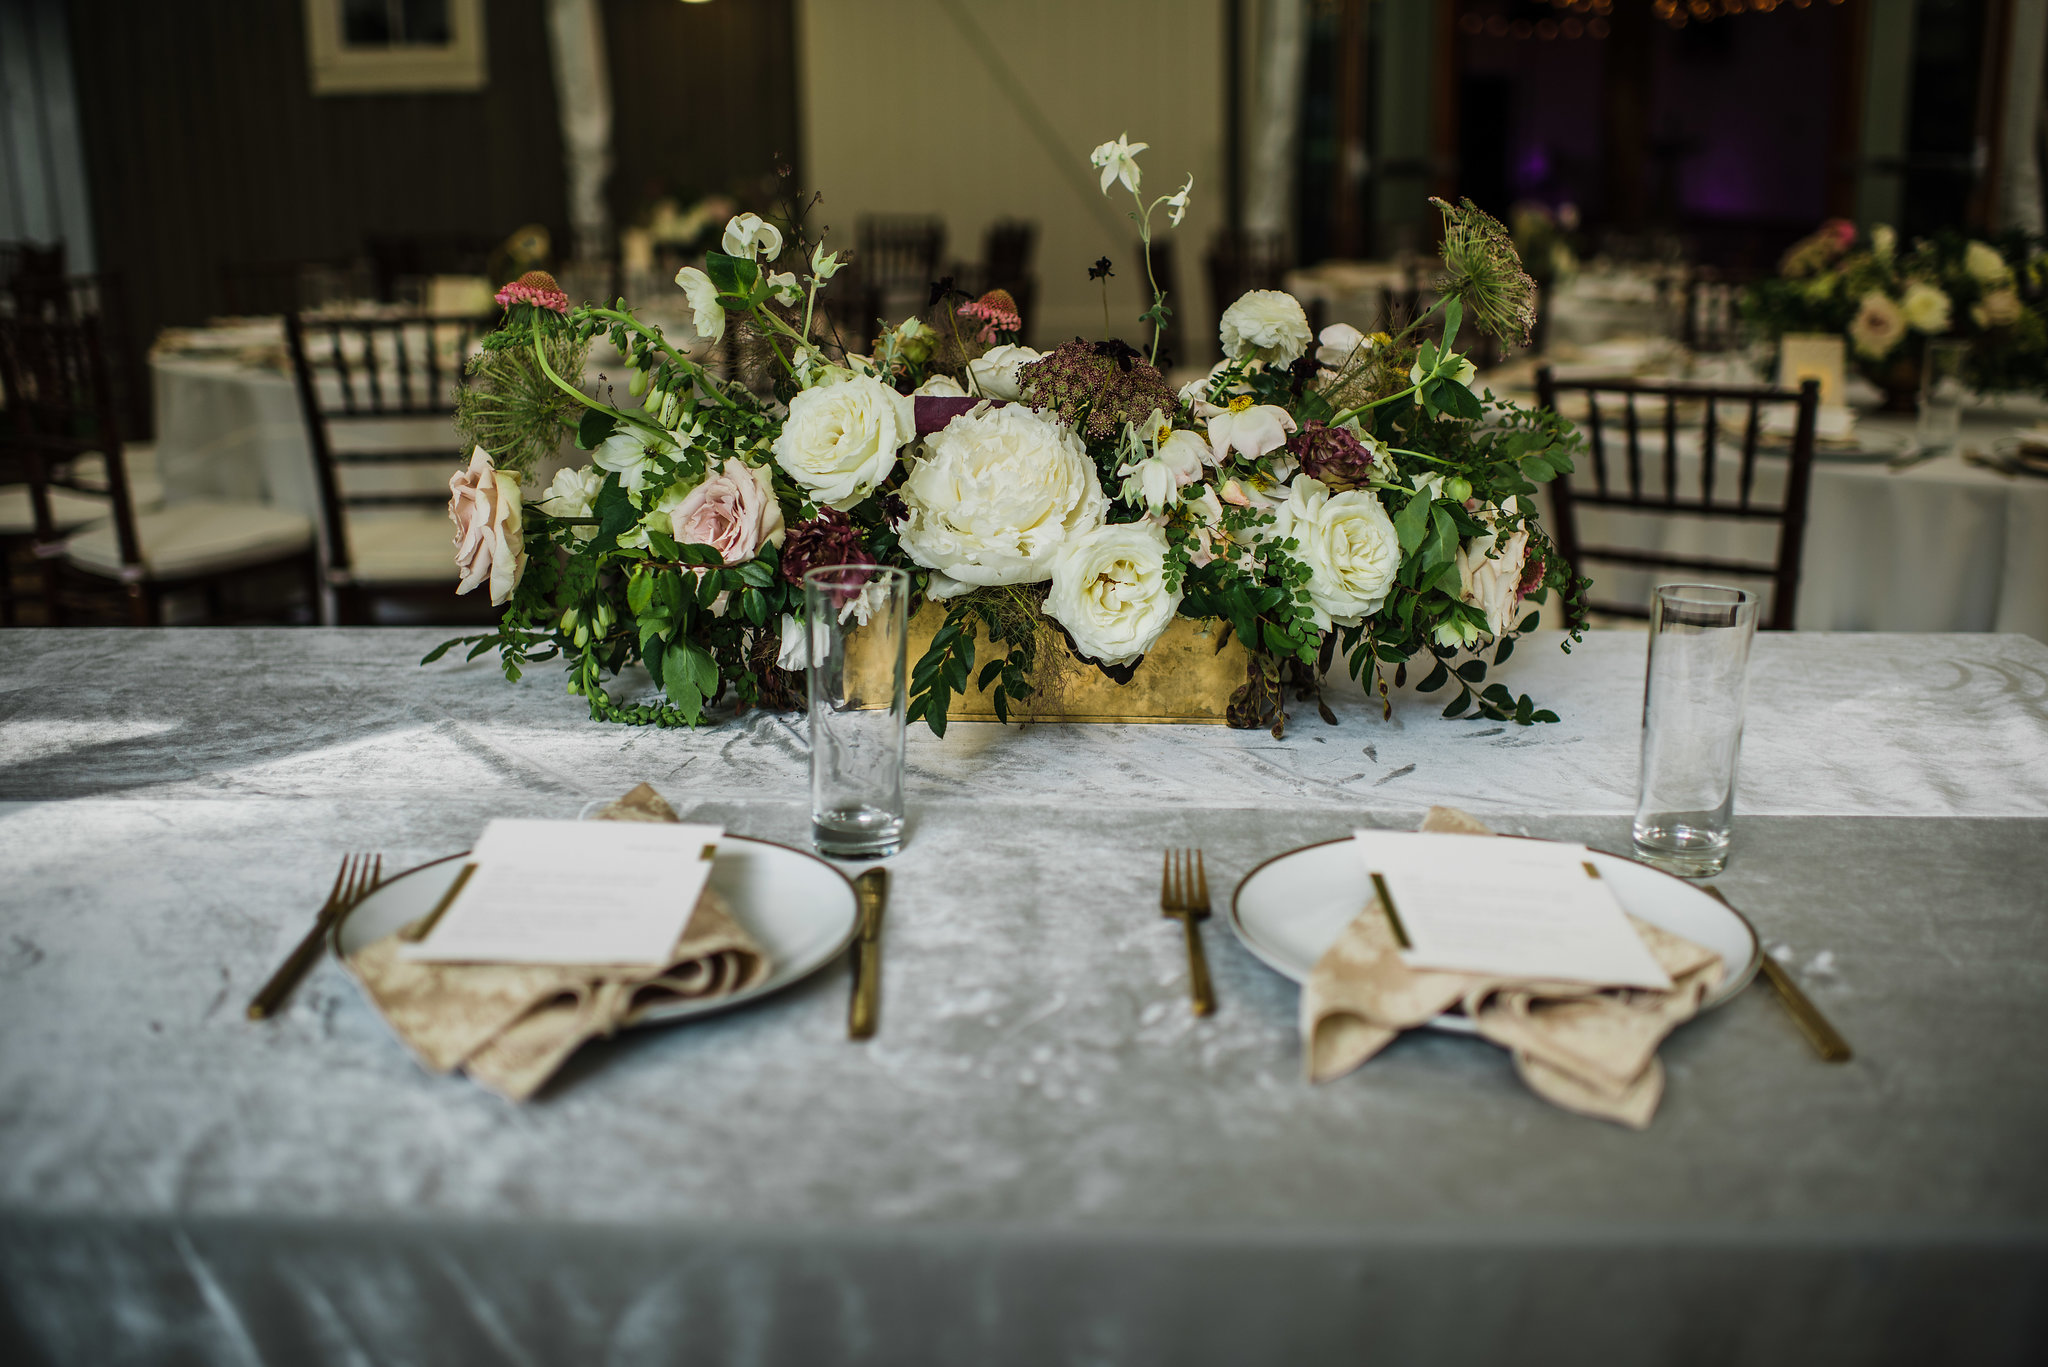 Velvet linens and lush, organic florals for the sweetheart table // Art deco inspired wedding at Travellers Rest, Nashville, TN